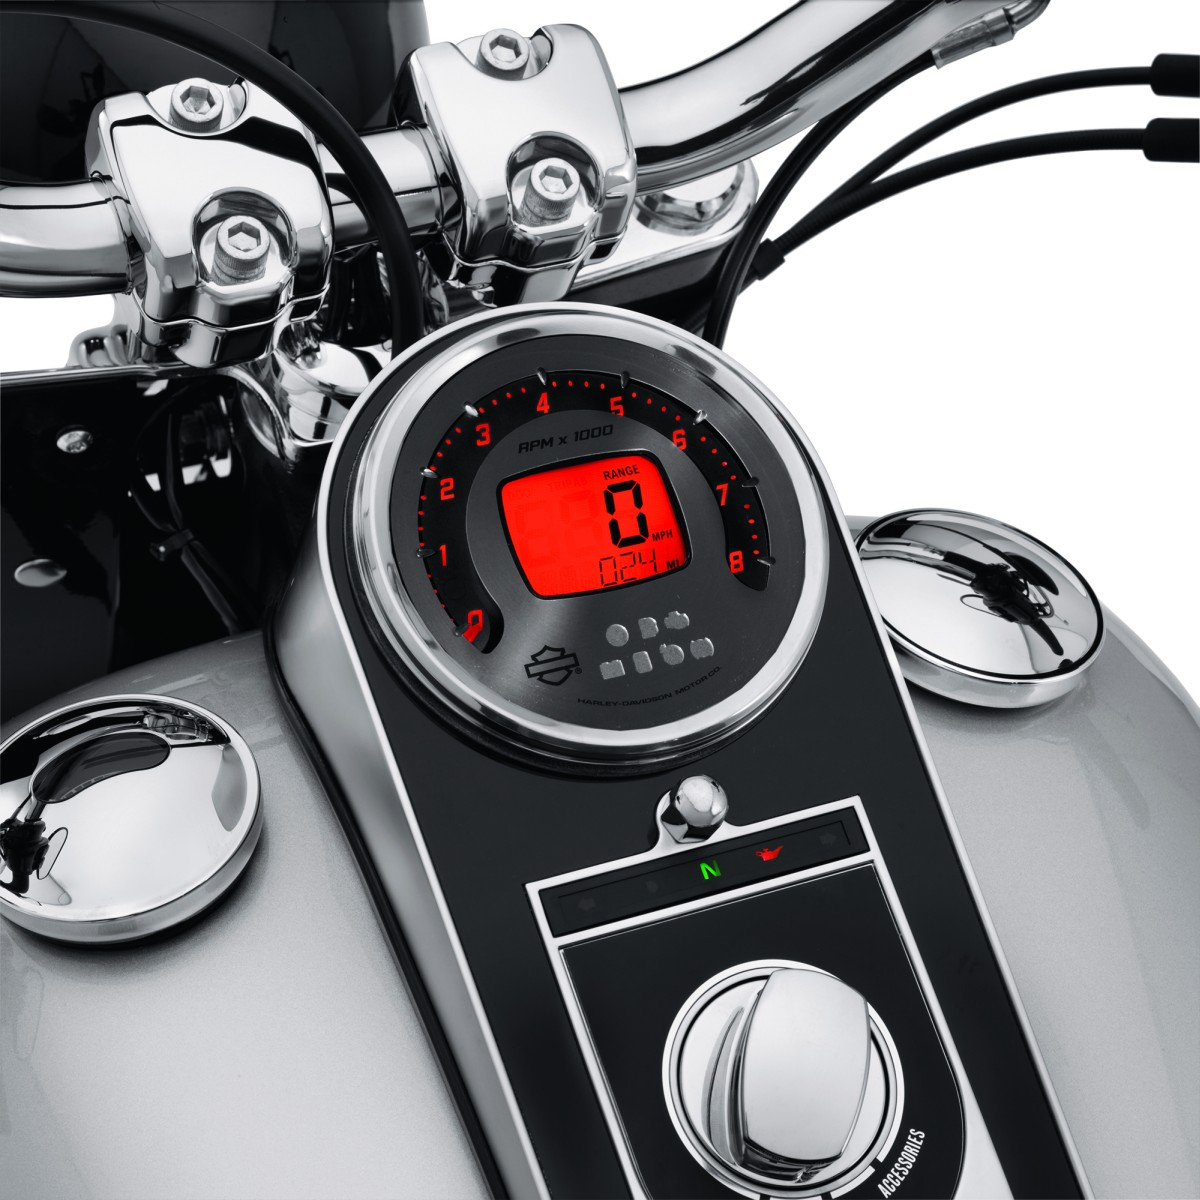 Electronic Speedometer Gauges : A combination digital speedometer analog